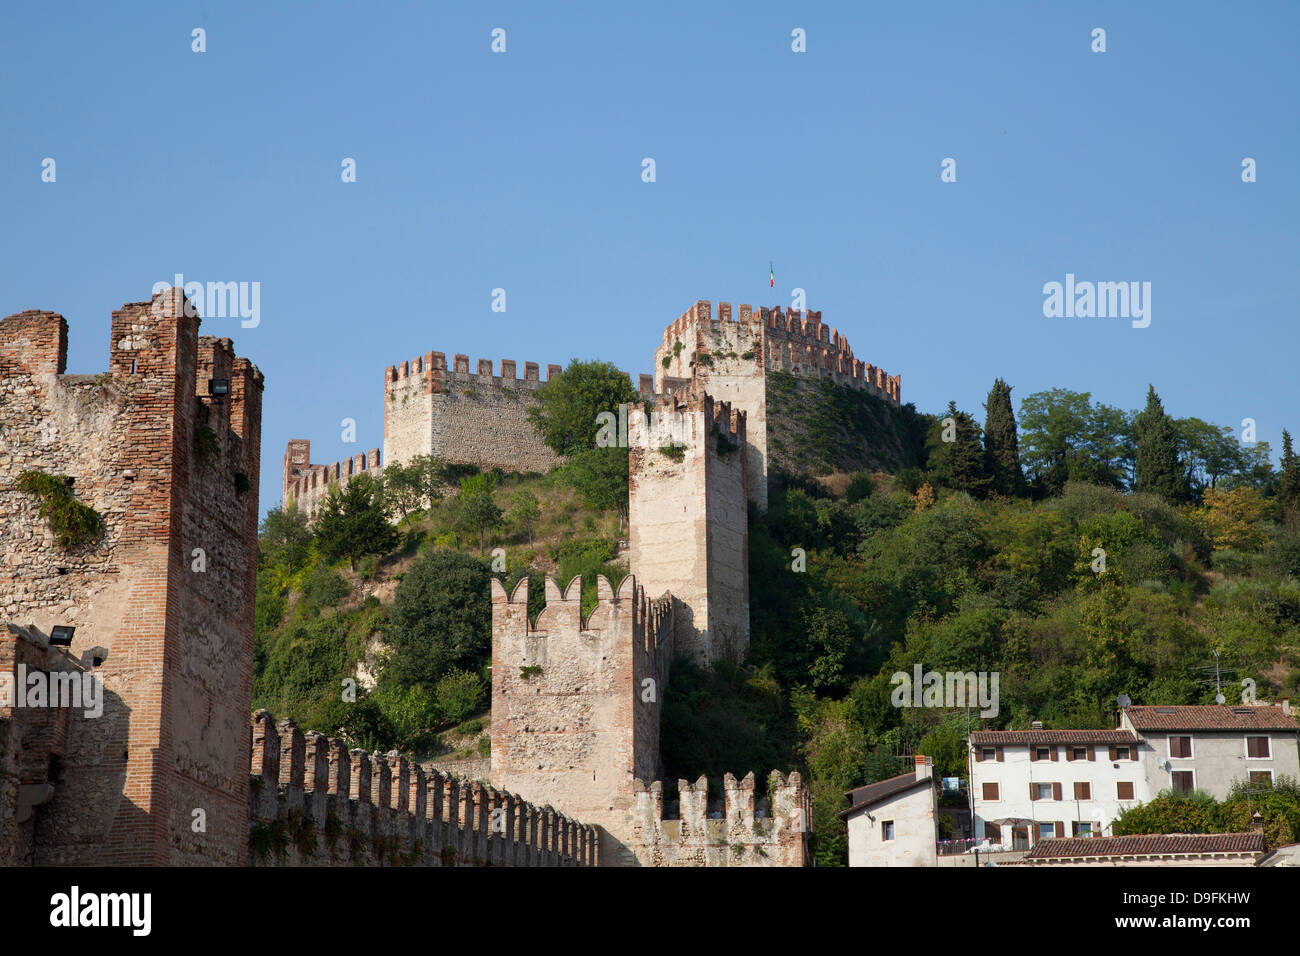 Castle and town walls, Soave, Veneto, Italy - Stock Image